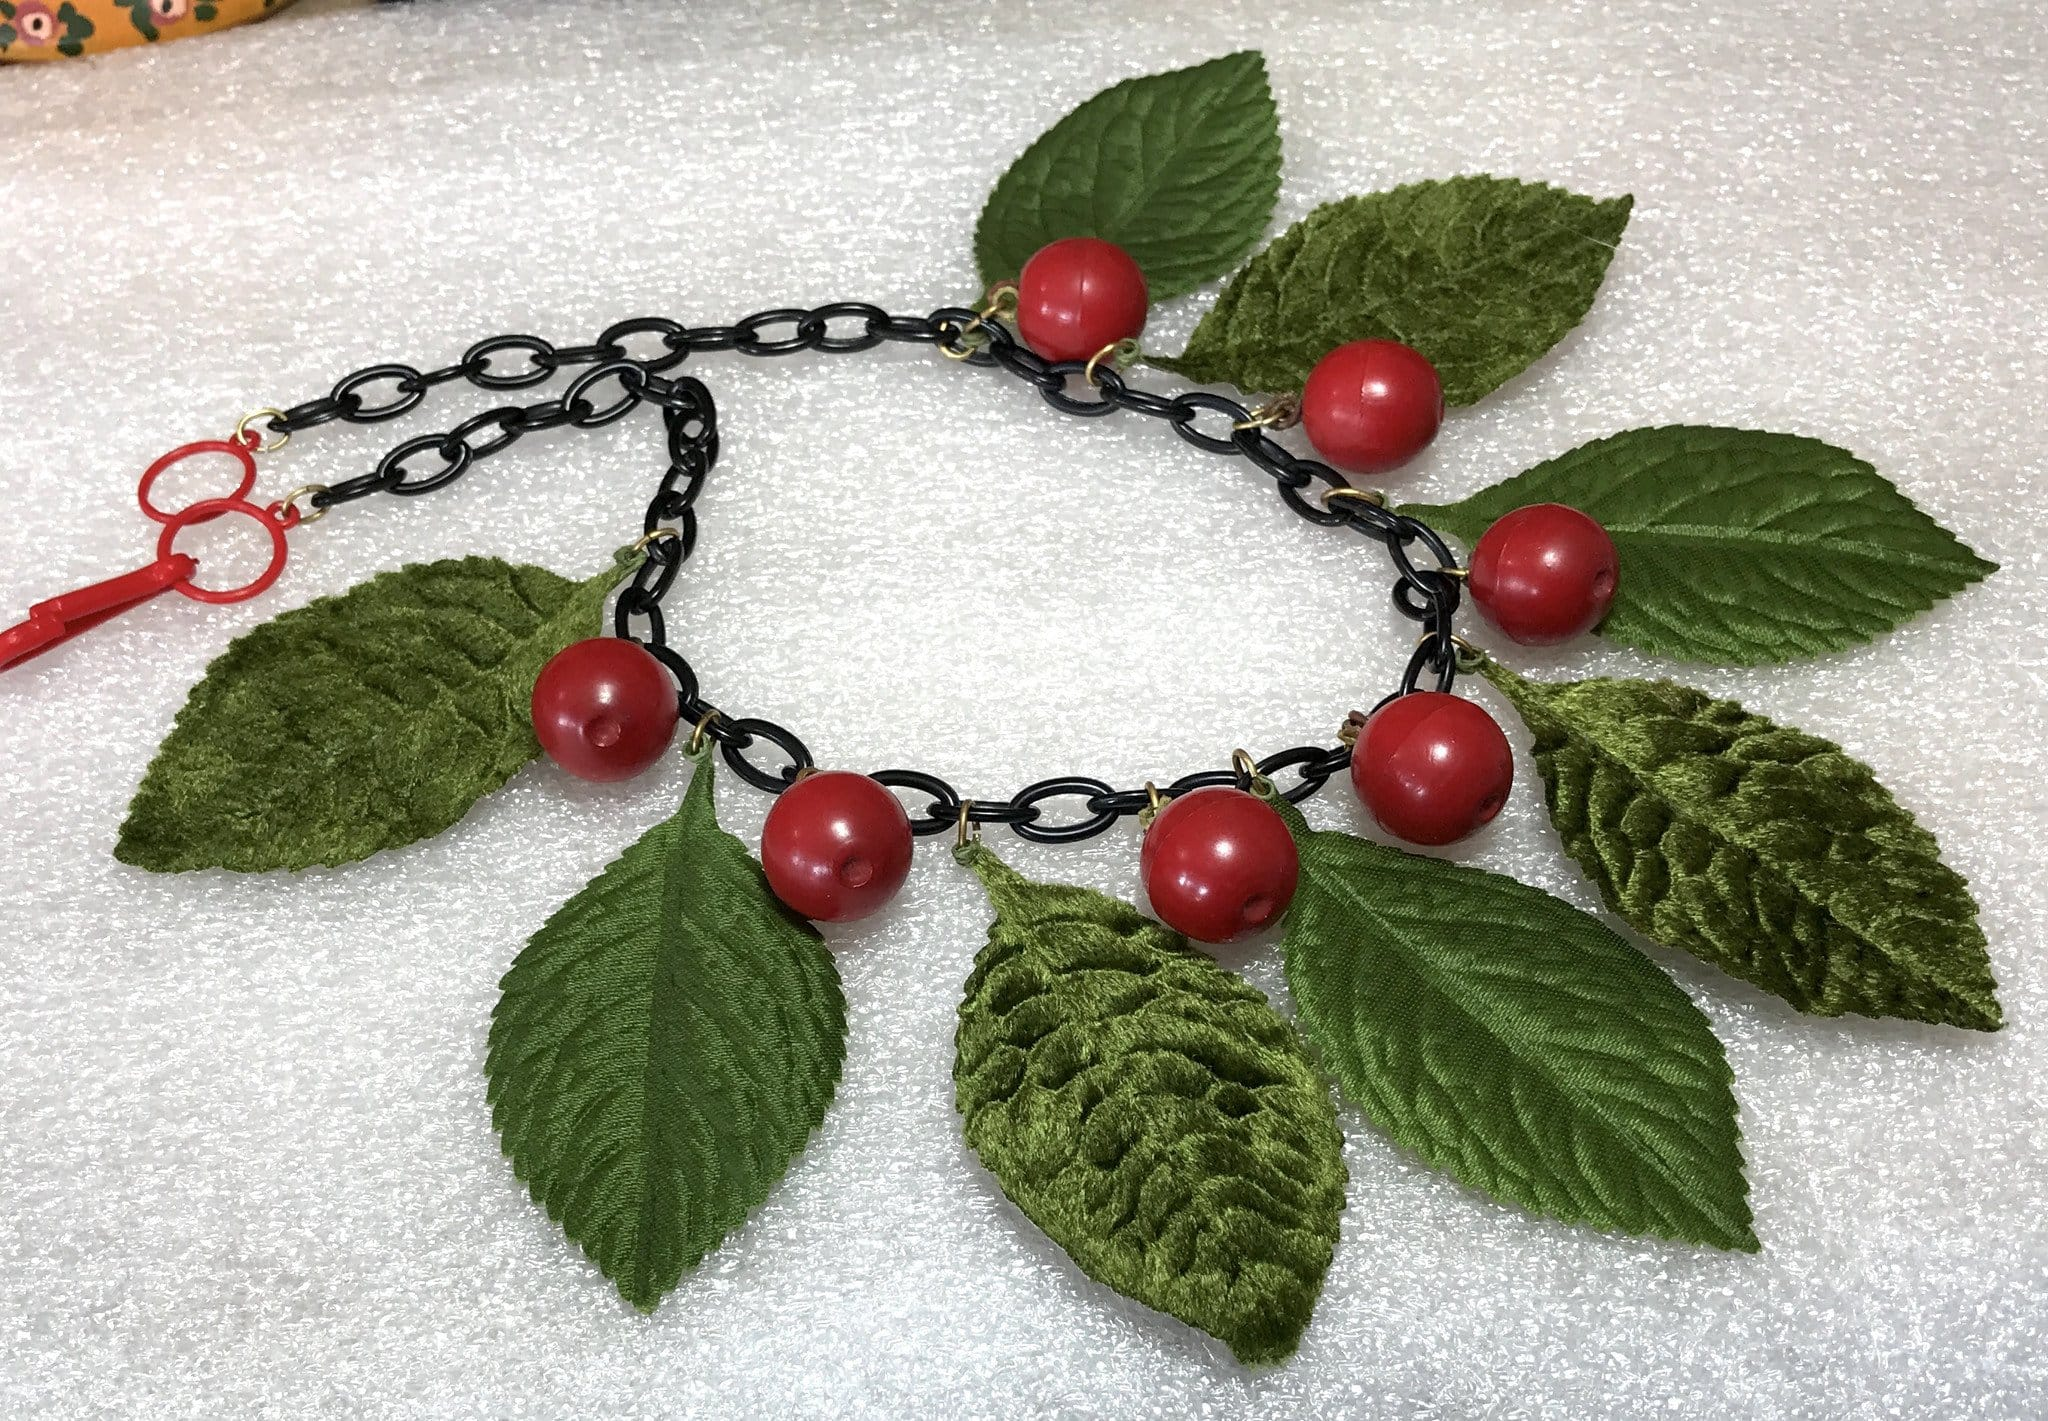 Vintage early plastic & fabric cherries and leaves necklace